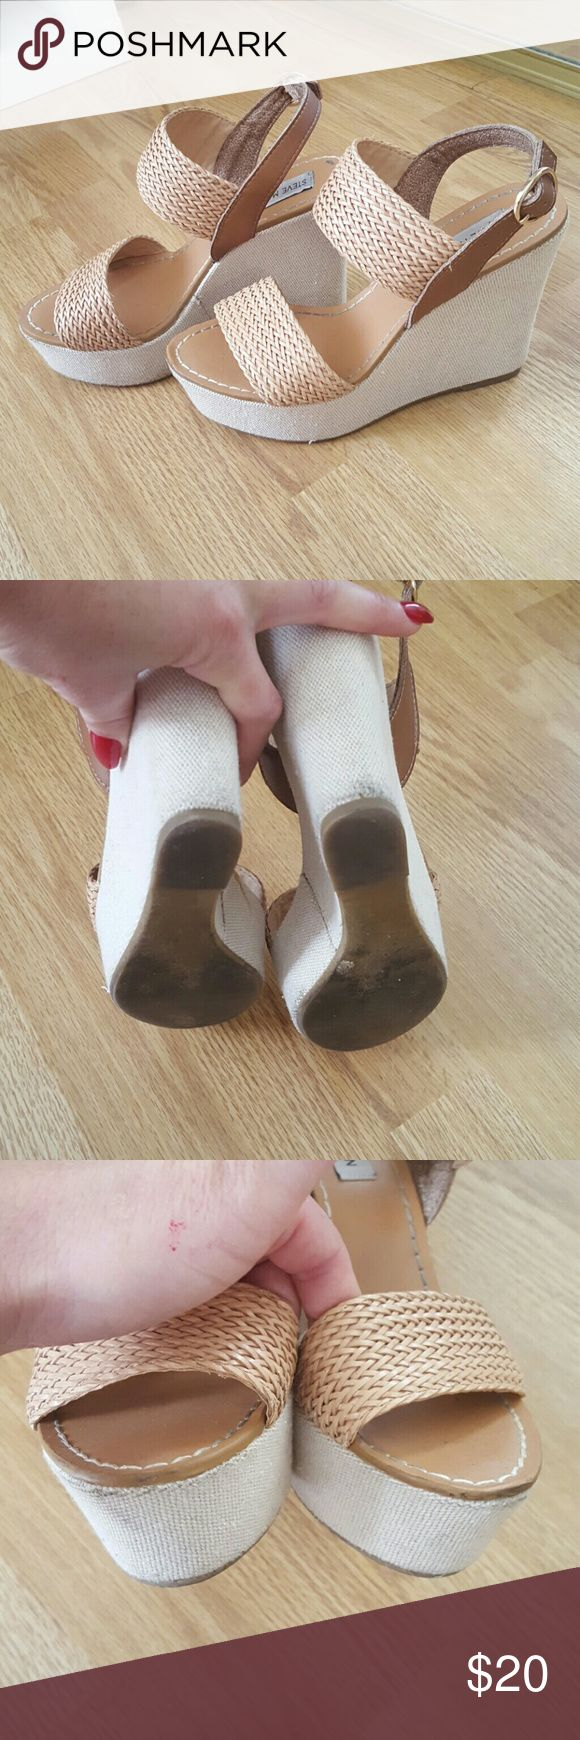 Steve Madden nude platform wedge Tri tone neutral sandal, slight marks on platform (see picture), I haven't tried to clean them. Probably worn 4 times, euc Steve Madden Shoes Wedges